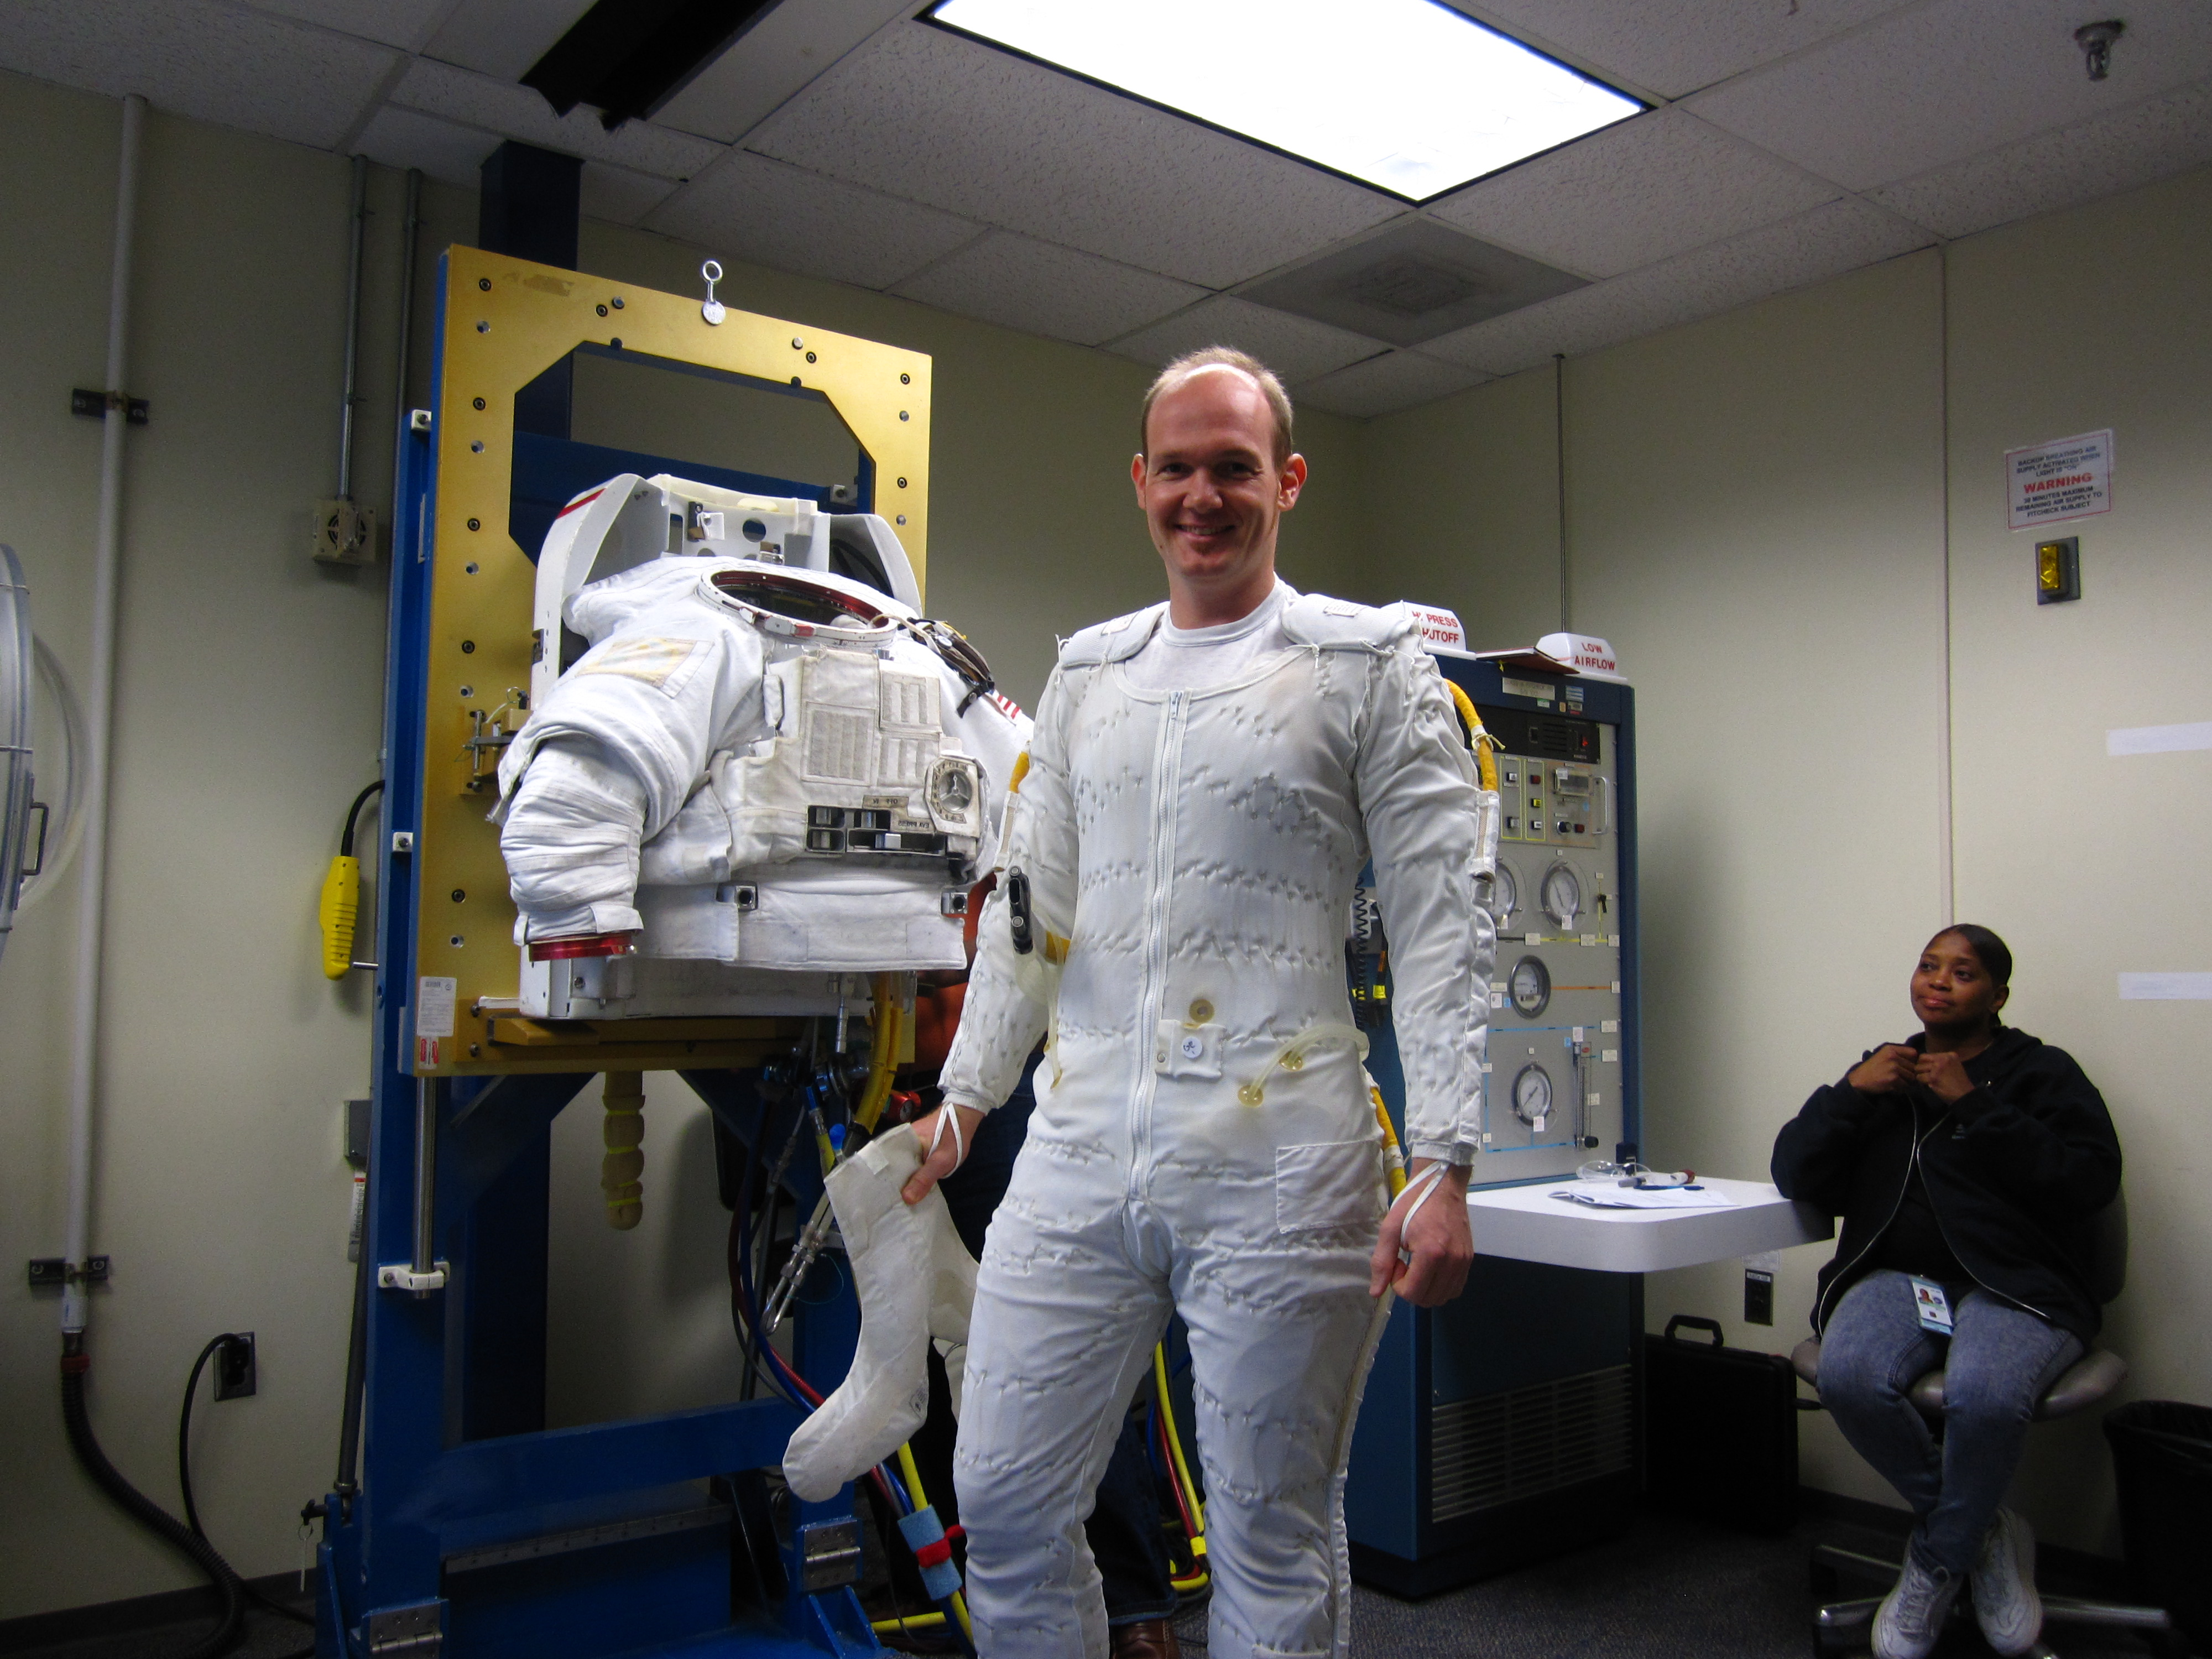 Space in Images - 2011 - 09 - Alexander Gerst at a ...